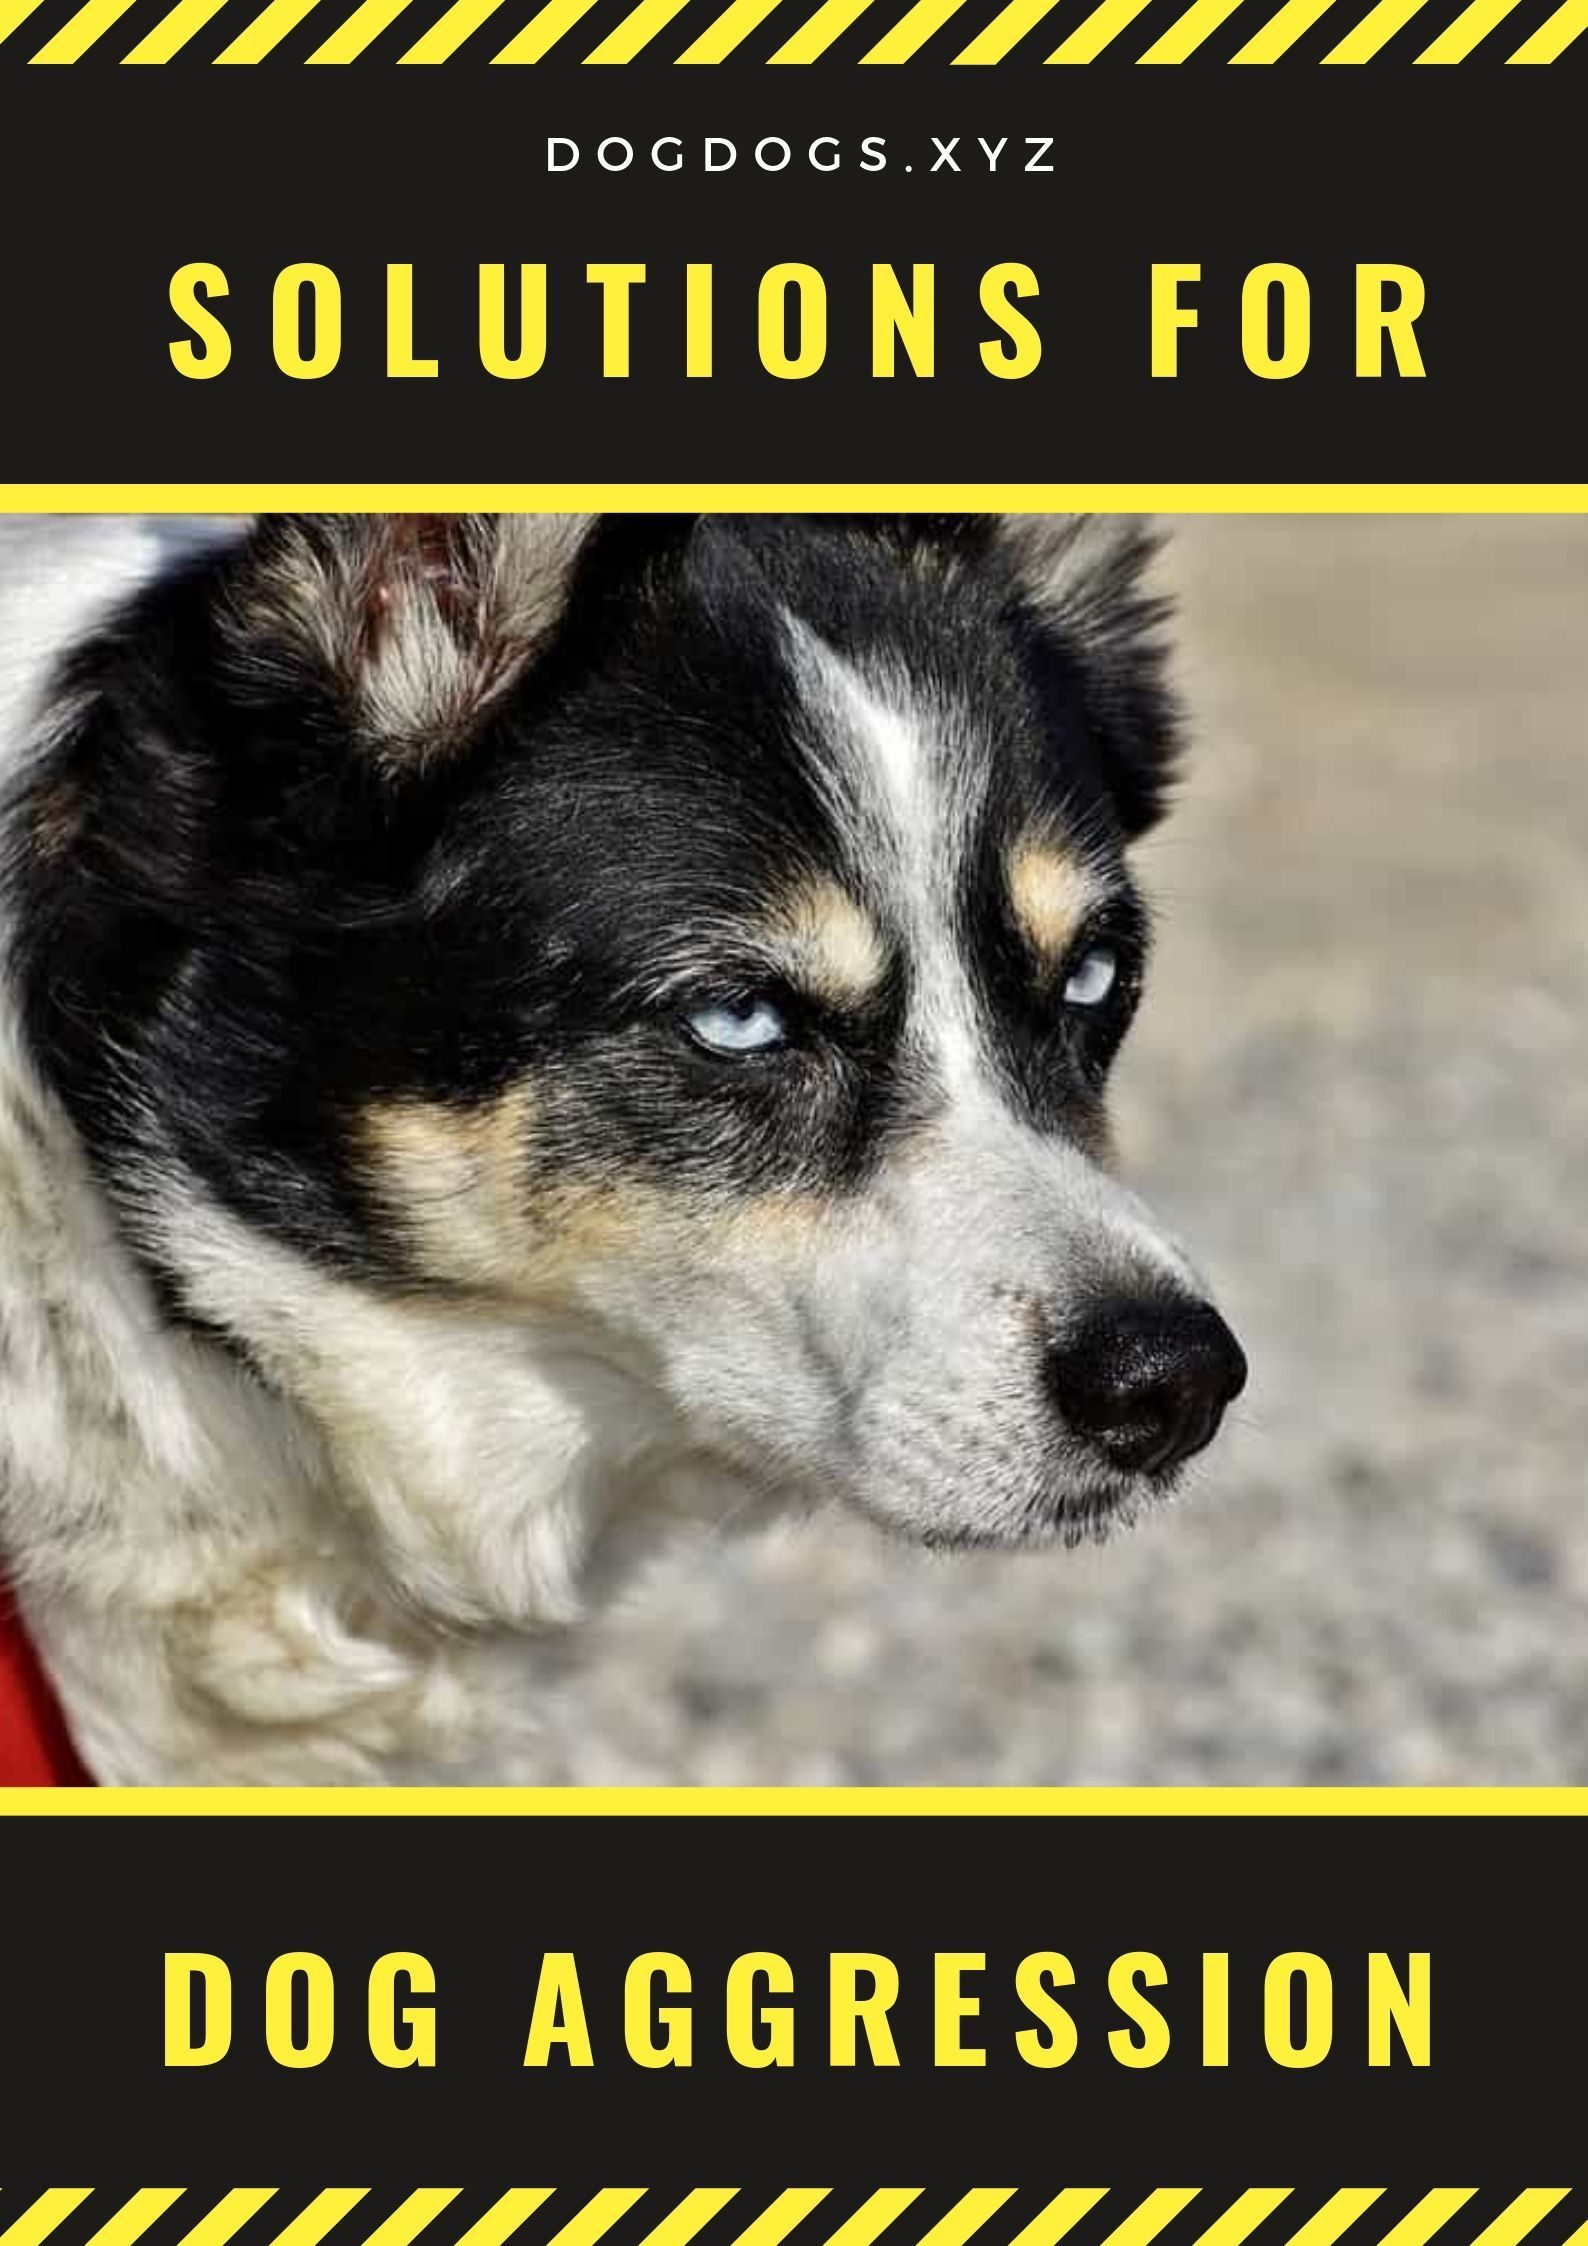 It may also be necessary for you to hire a dog training